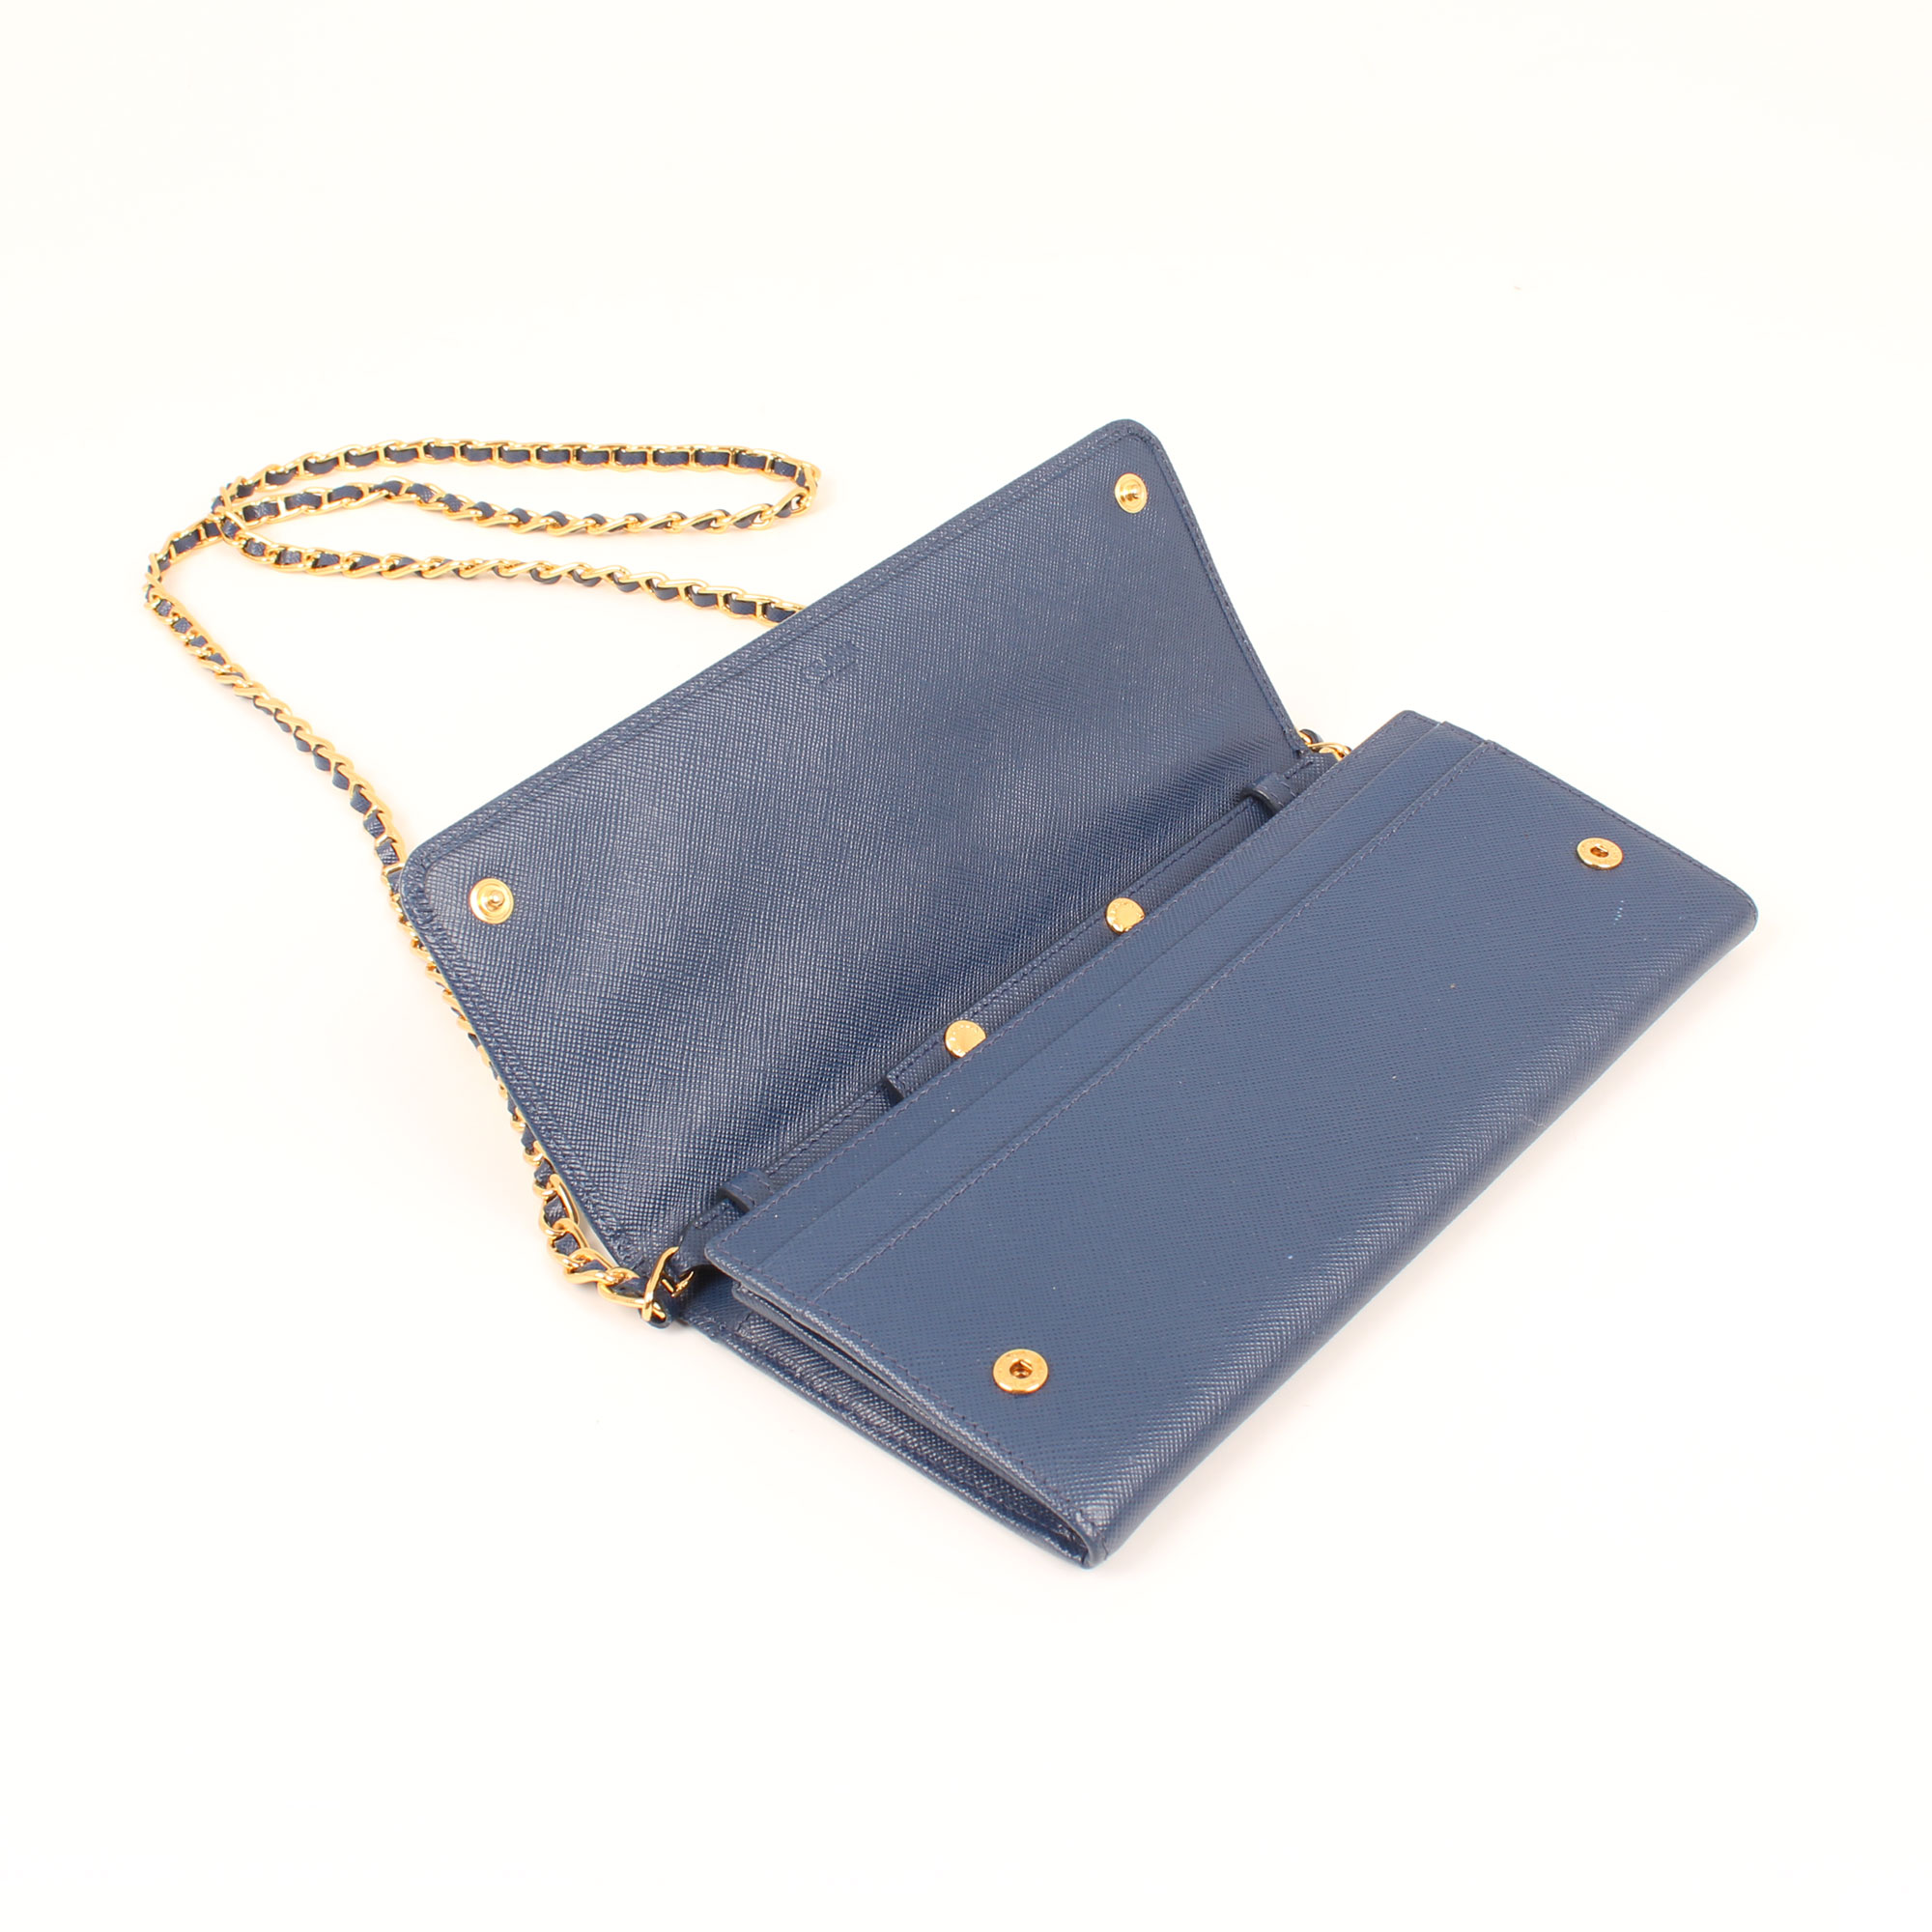 bolso-prada-wallet-on-chain-saffiano-metal-bluette-azul-abierto